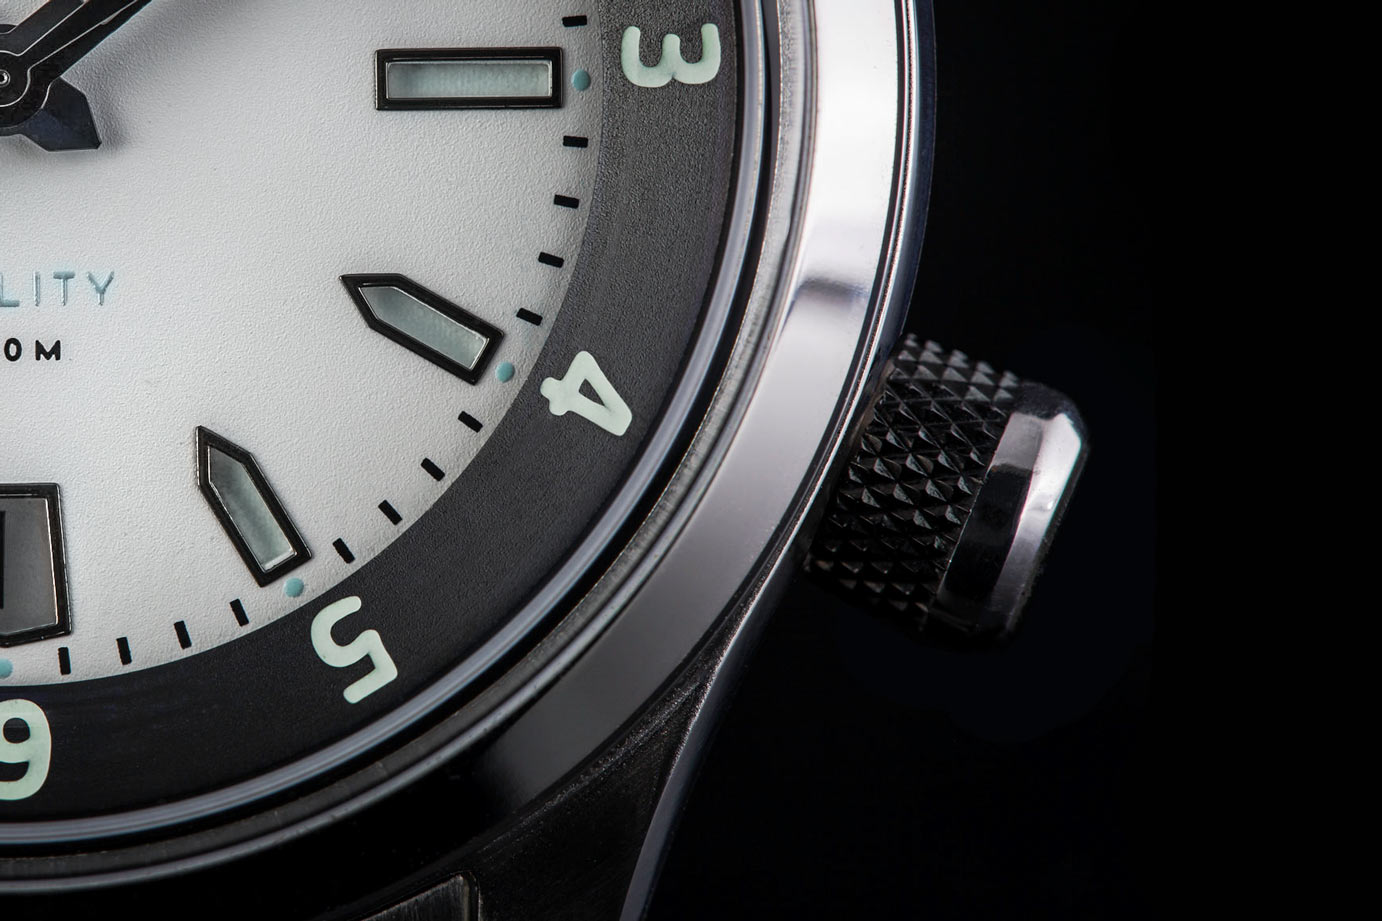 INNOVATIVE CONSTRUCTION - The Duality features a first-of-its-kind hybrid dial which comprises a sandwich construction with applied indices, allowing for maximum visual depth. It is operated with a pair of screw down crowns, constructed with a decoupling function that is reminiscent of the original EPSA-patented Super Compressor caseback mechanism, ensuring accurate bezel-timing and the integrity of the water-resistance seals.